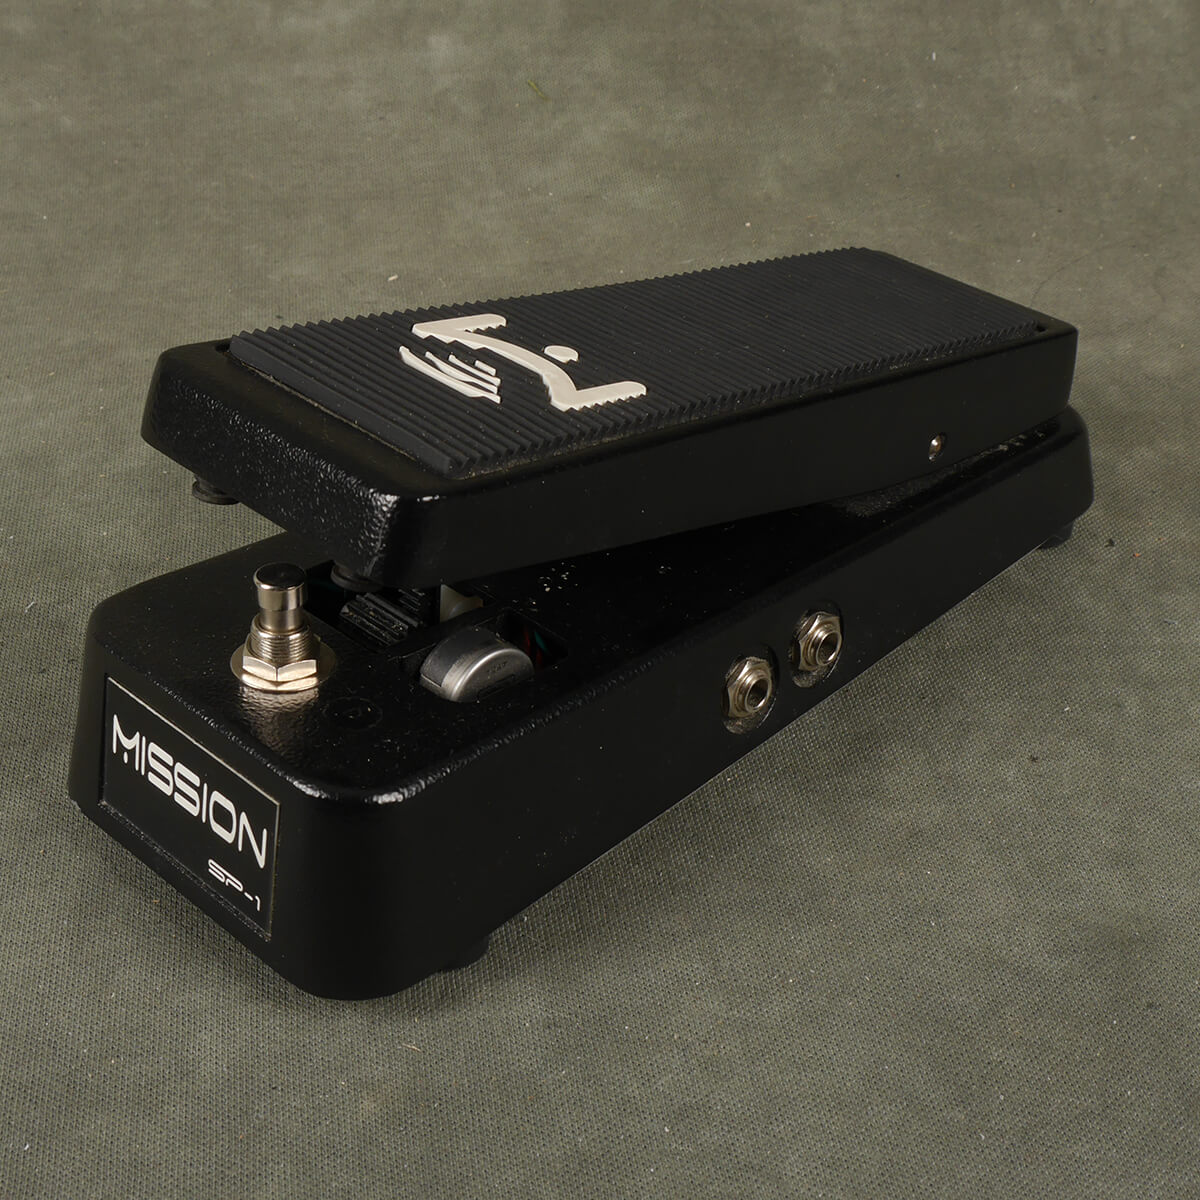 Mission Engineering SP1 Expression Pedal - 2nd Hand